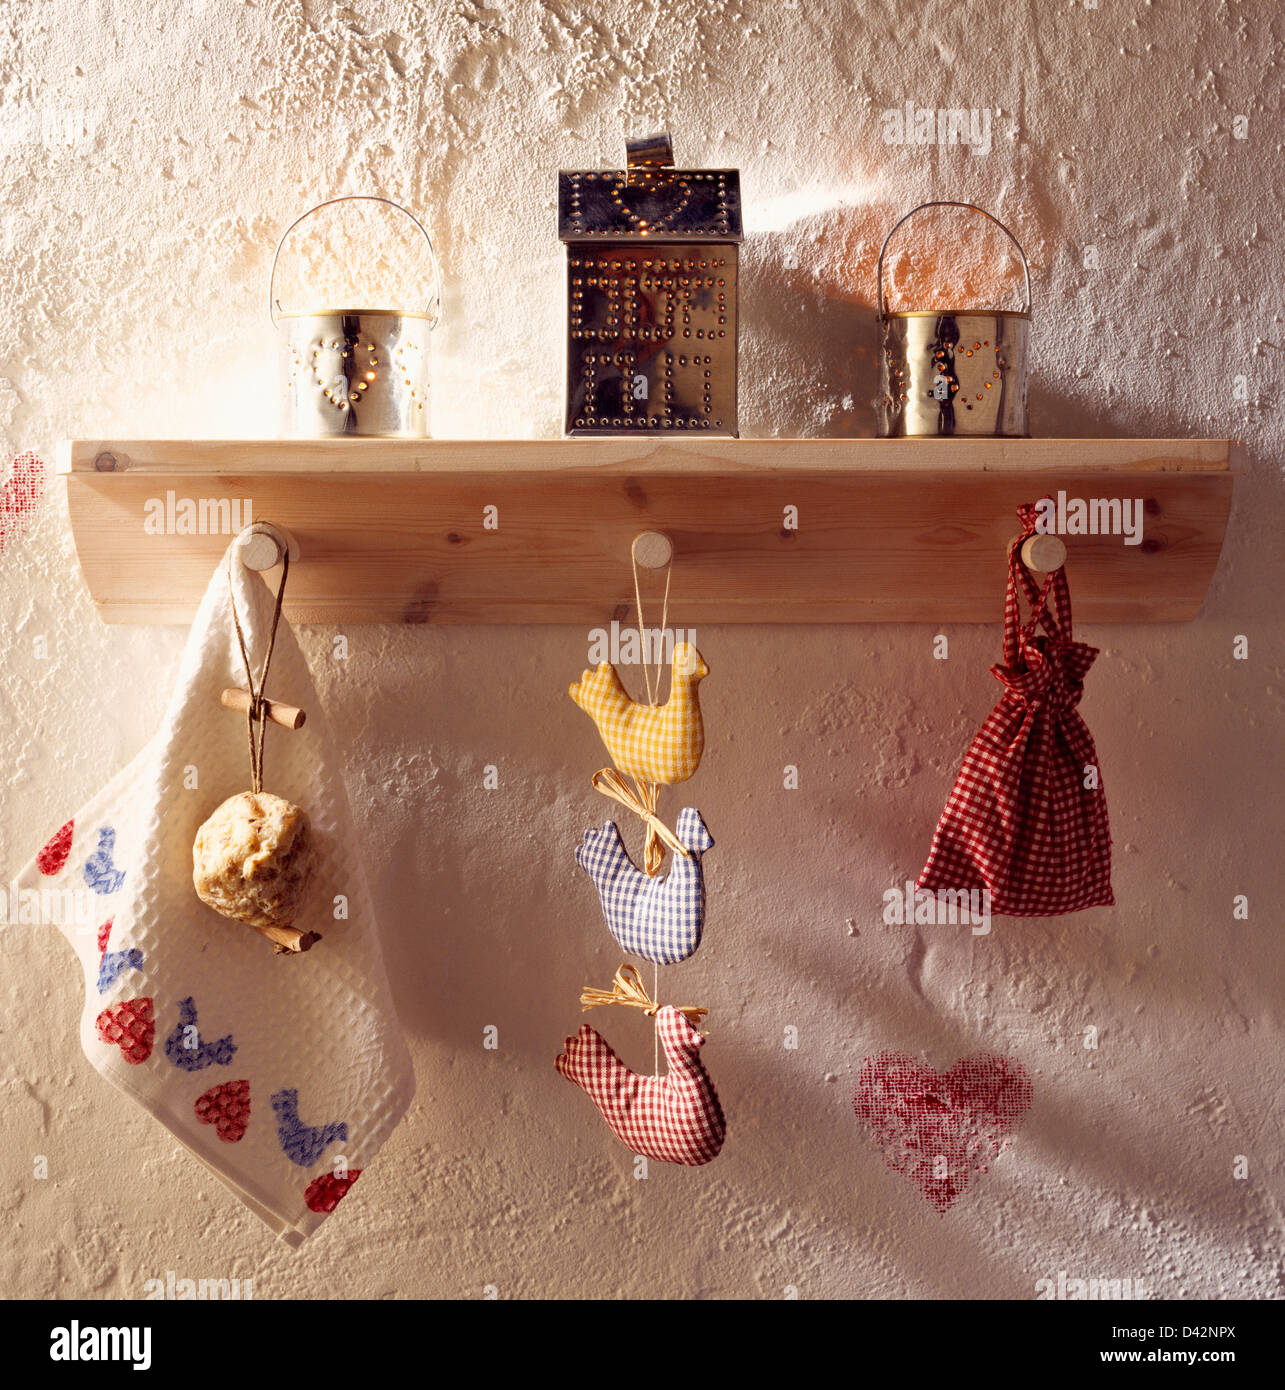 Close-up of punched tin candle holders on wooden shelf with Shaker-style gingham bag and cloth ducks on peg rail - Stock Image